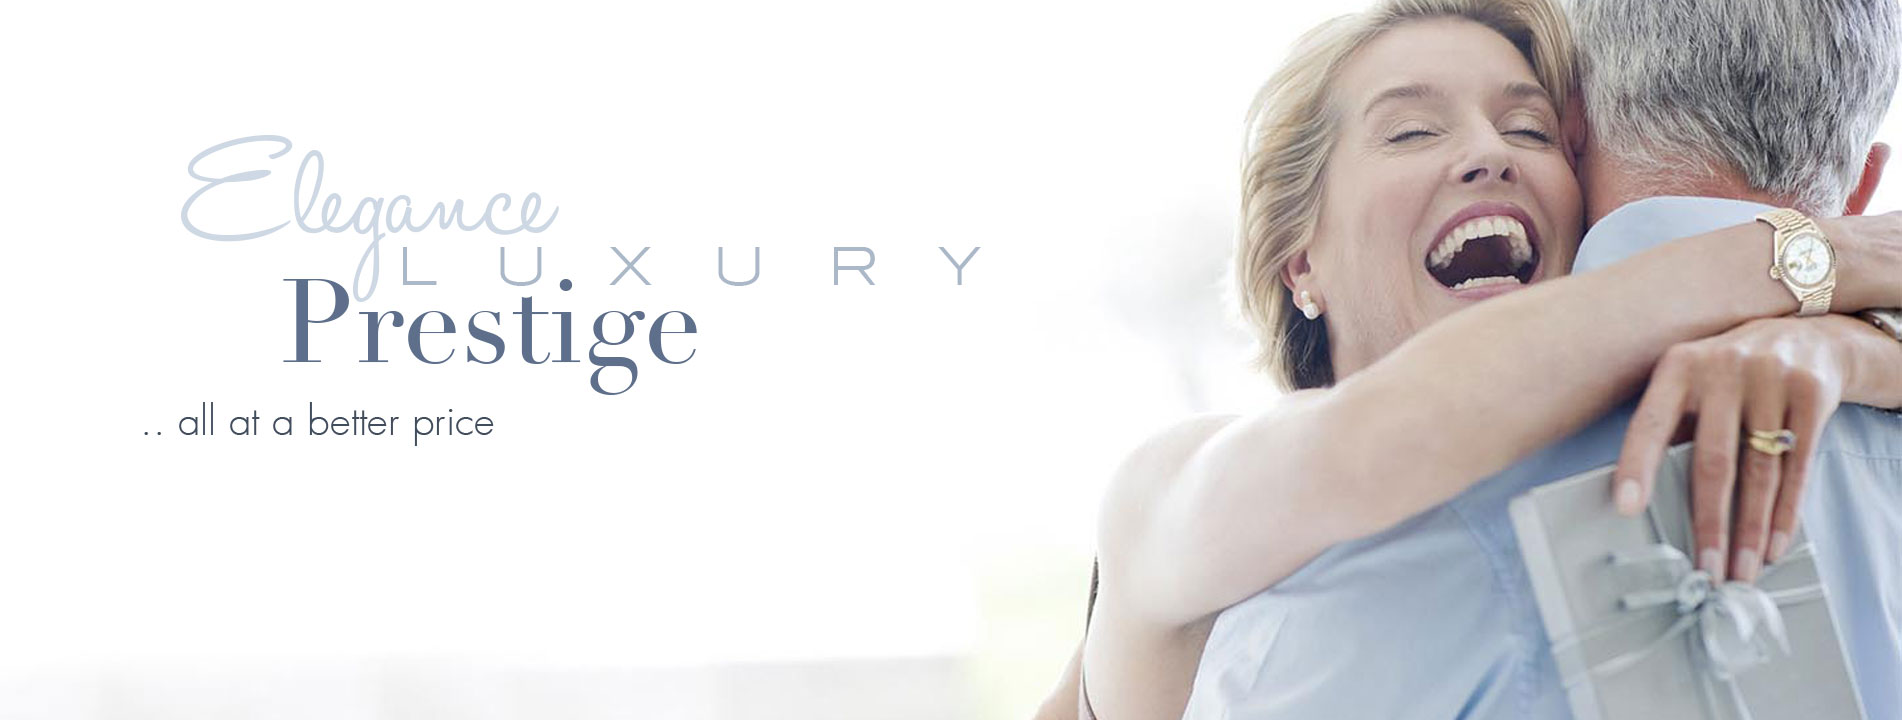 Elegance Luxury Prestive.. all at a better price